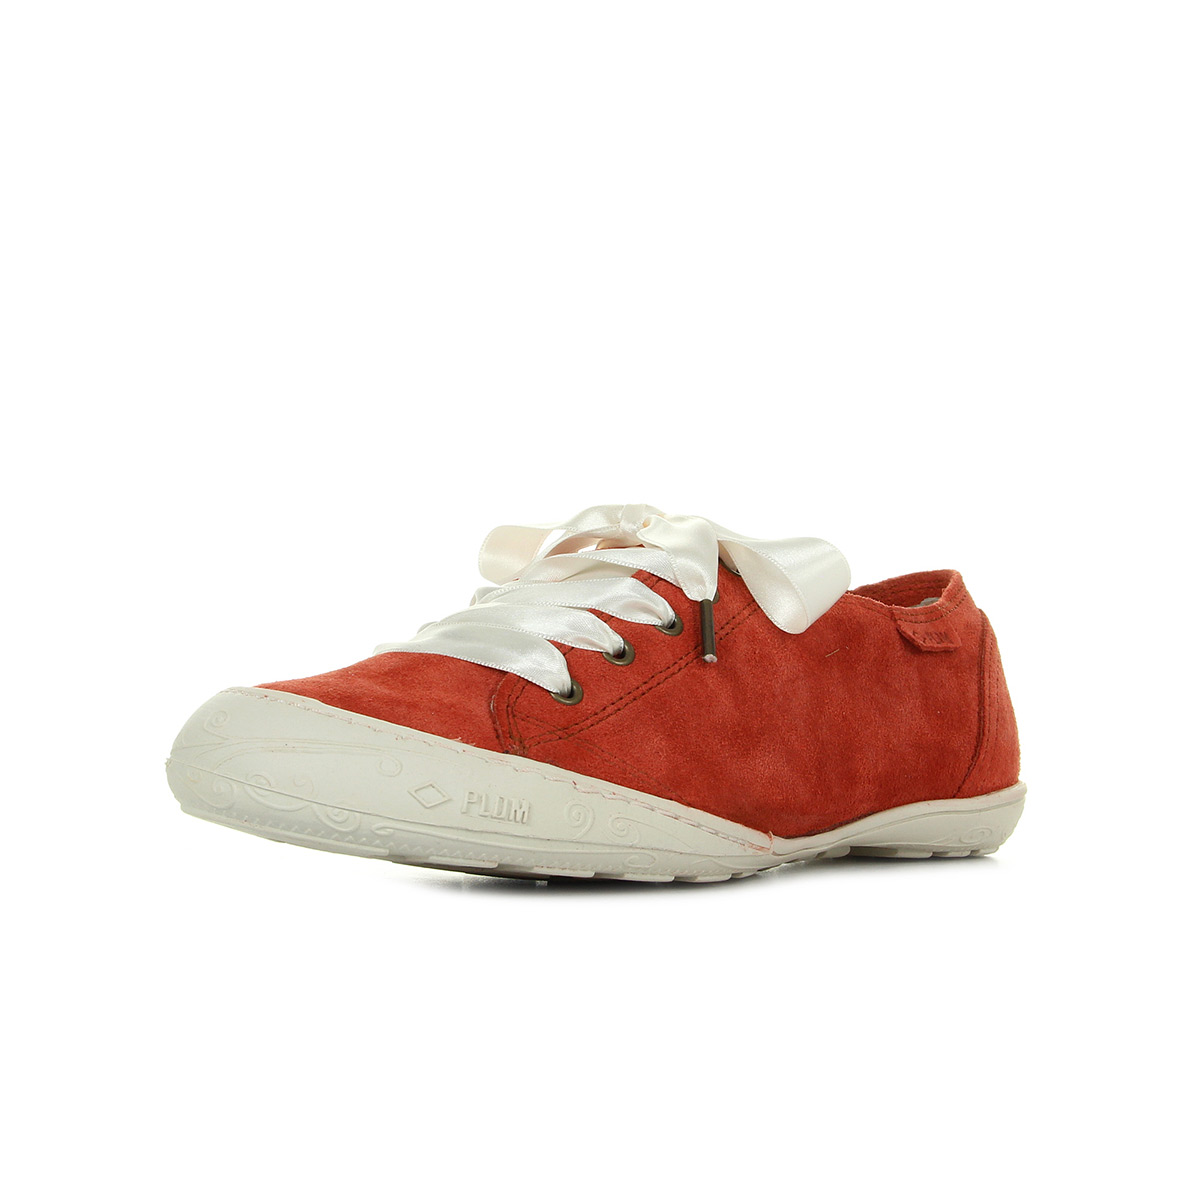 zapatos  Baskets Palladium mujer Game Sud Masai taille taille taille Rouge Cuir Lacets 637553